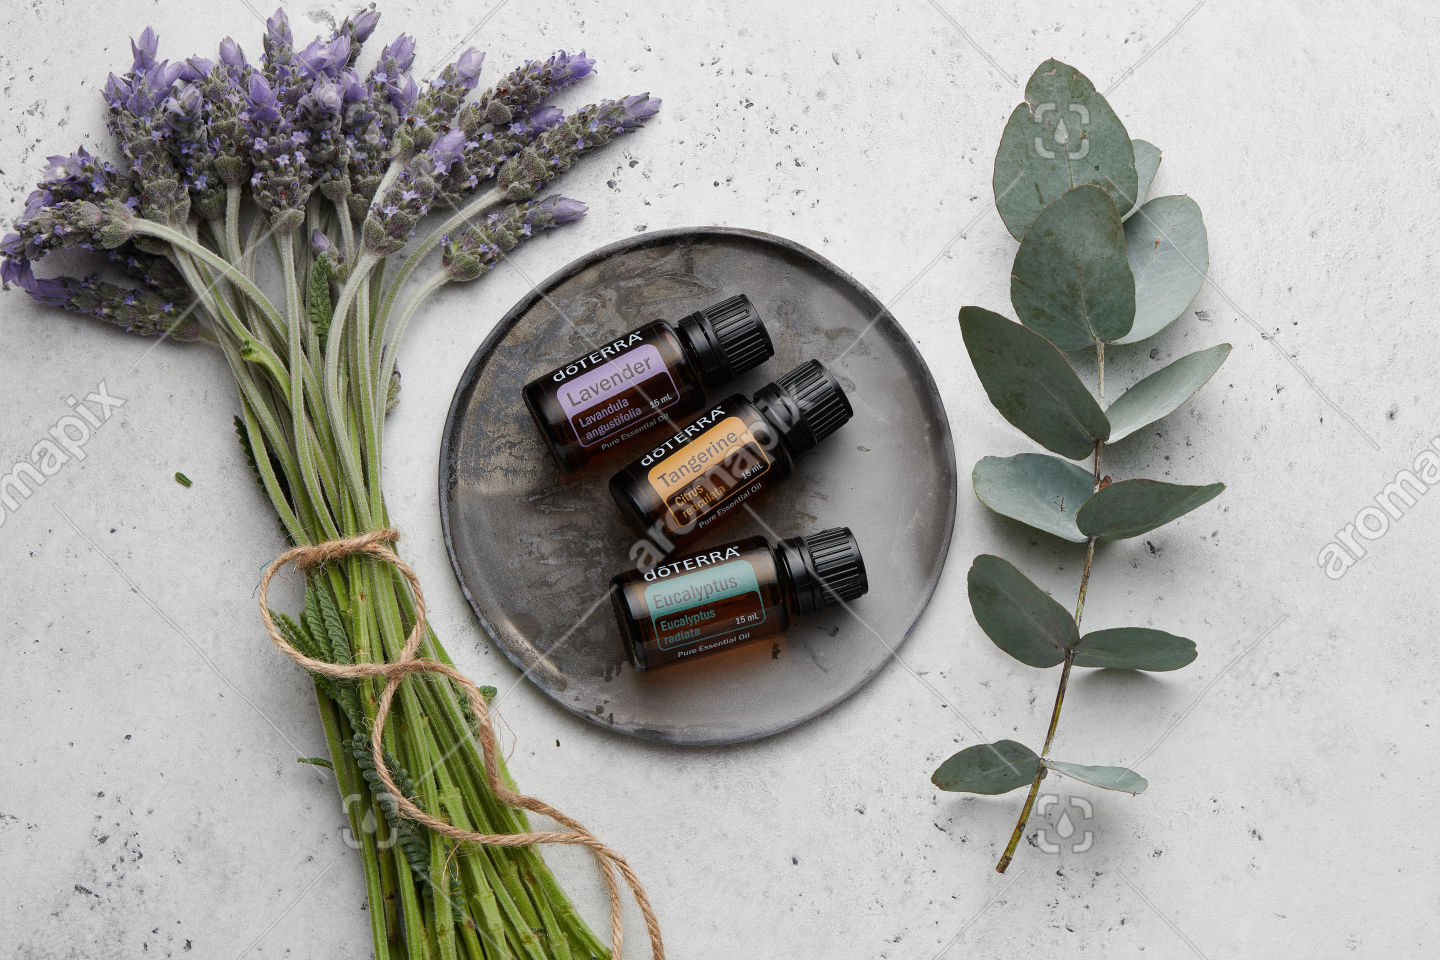 doTERRA Lavender, Tangerine and Eucalyptus with lavender flowers and eucalyptus stem on white